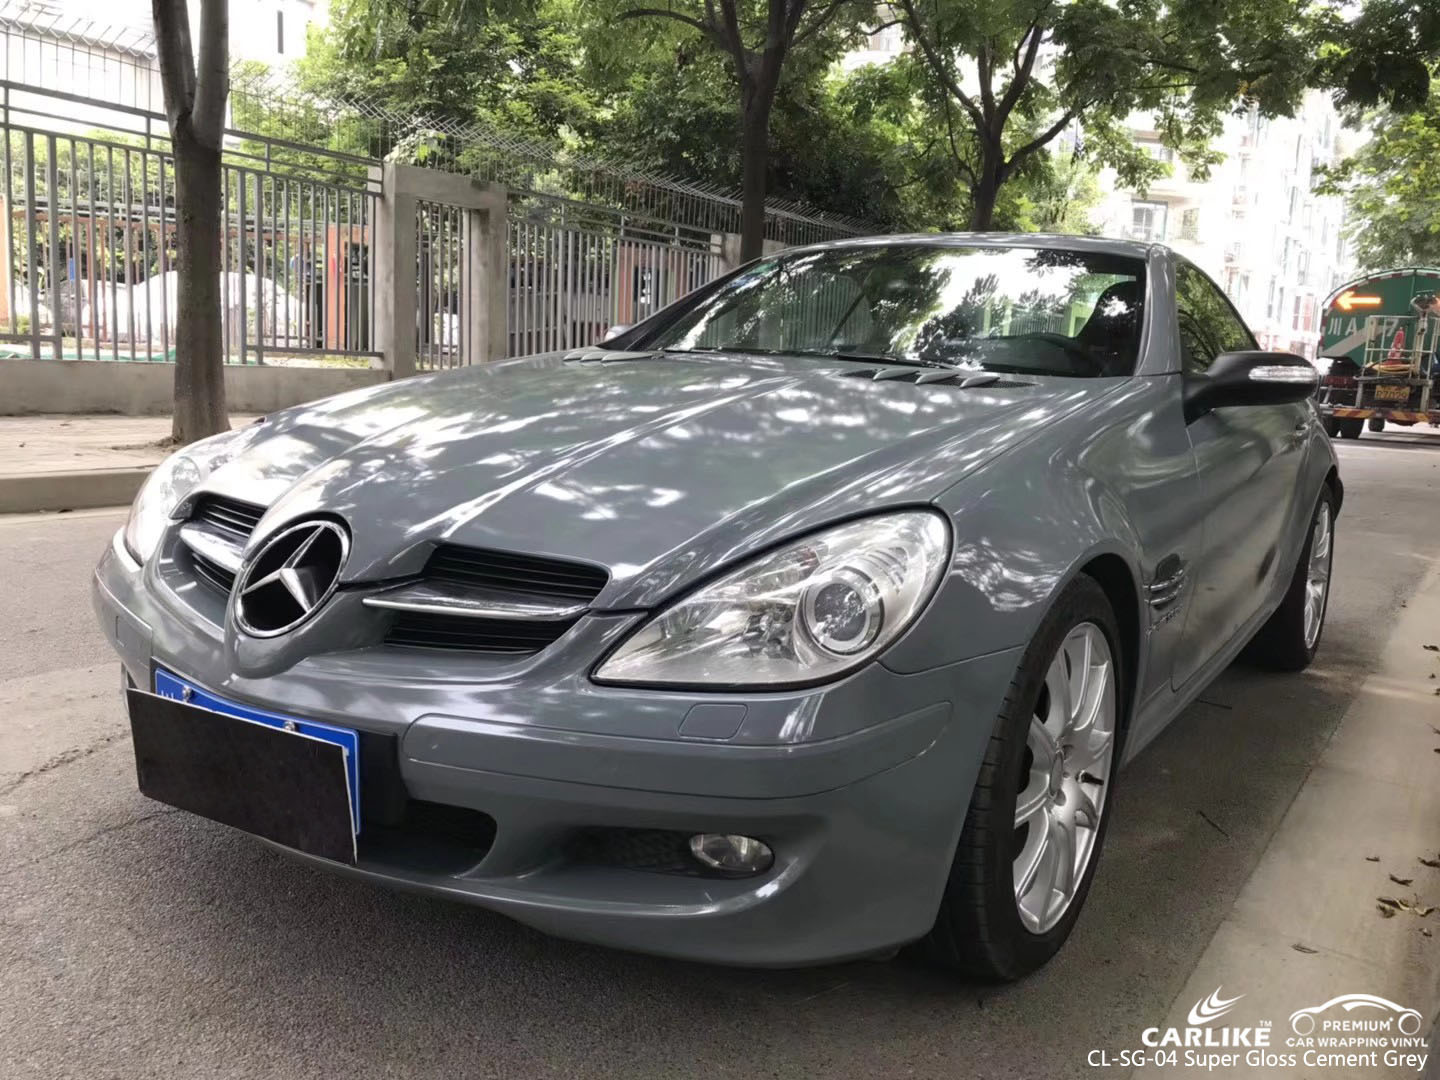 CARLIKE CL-SG-04 SUPER GLOSS CEMENT GREY VINYL WRAP FOR MERCEDES-BENZ